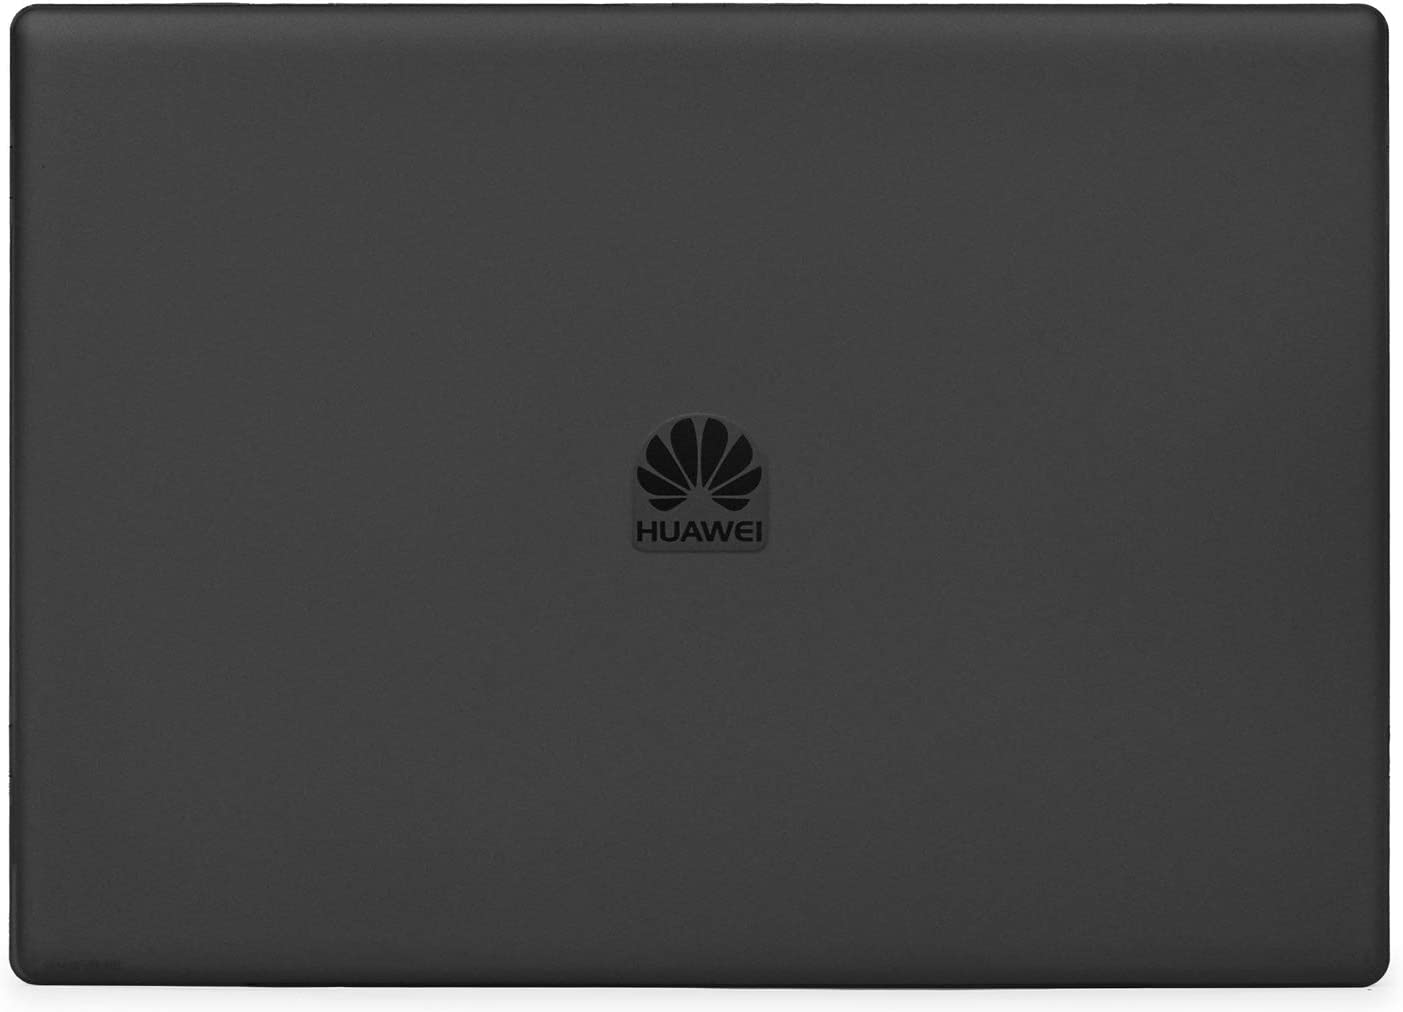 "mCover Hard Shell Case for 2018 13.9"" Huawei MateBook X Pro Series Laptop (HW-MateBook-XPro14 Black)"